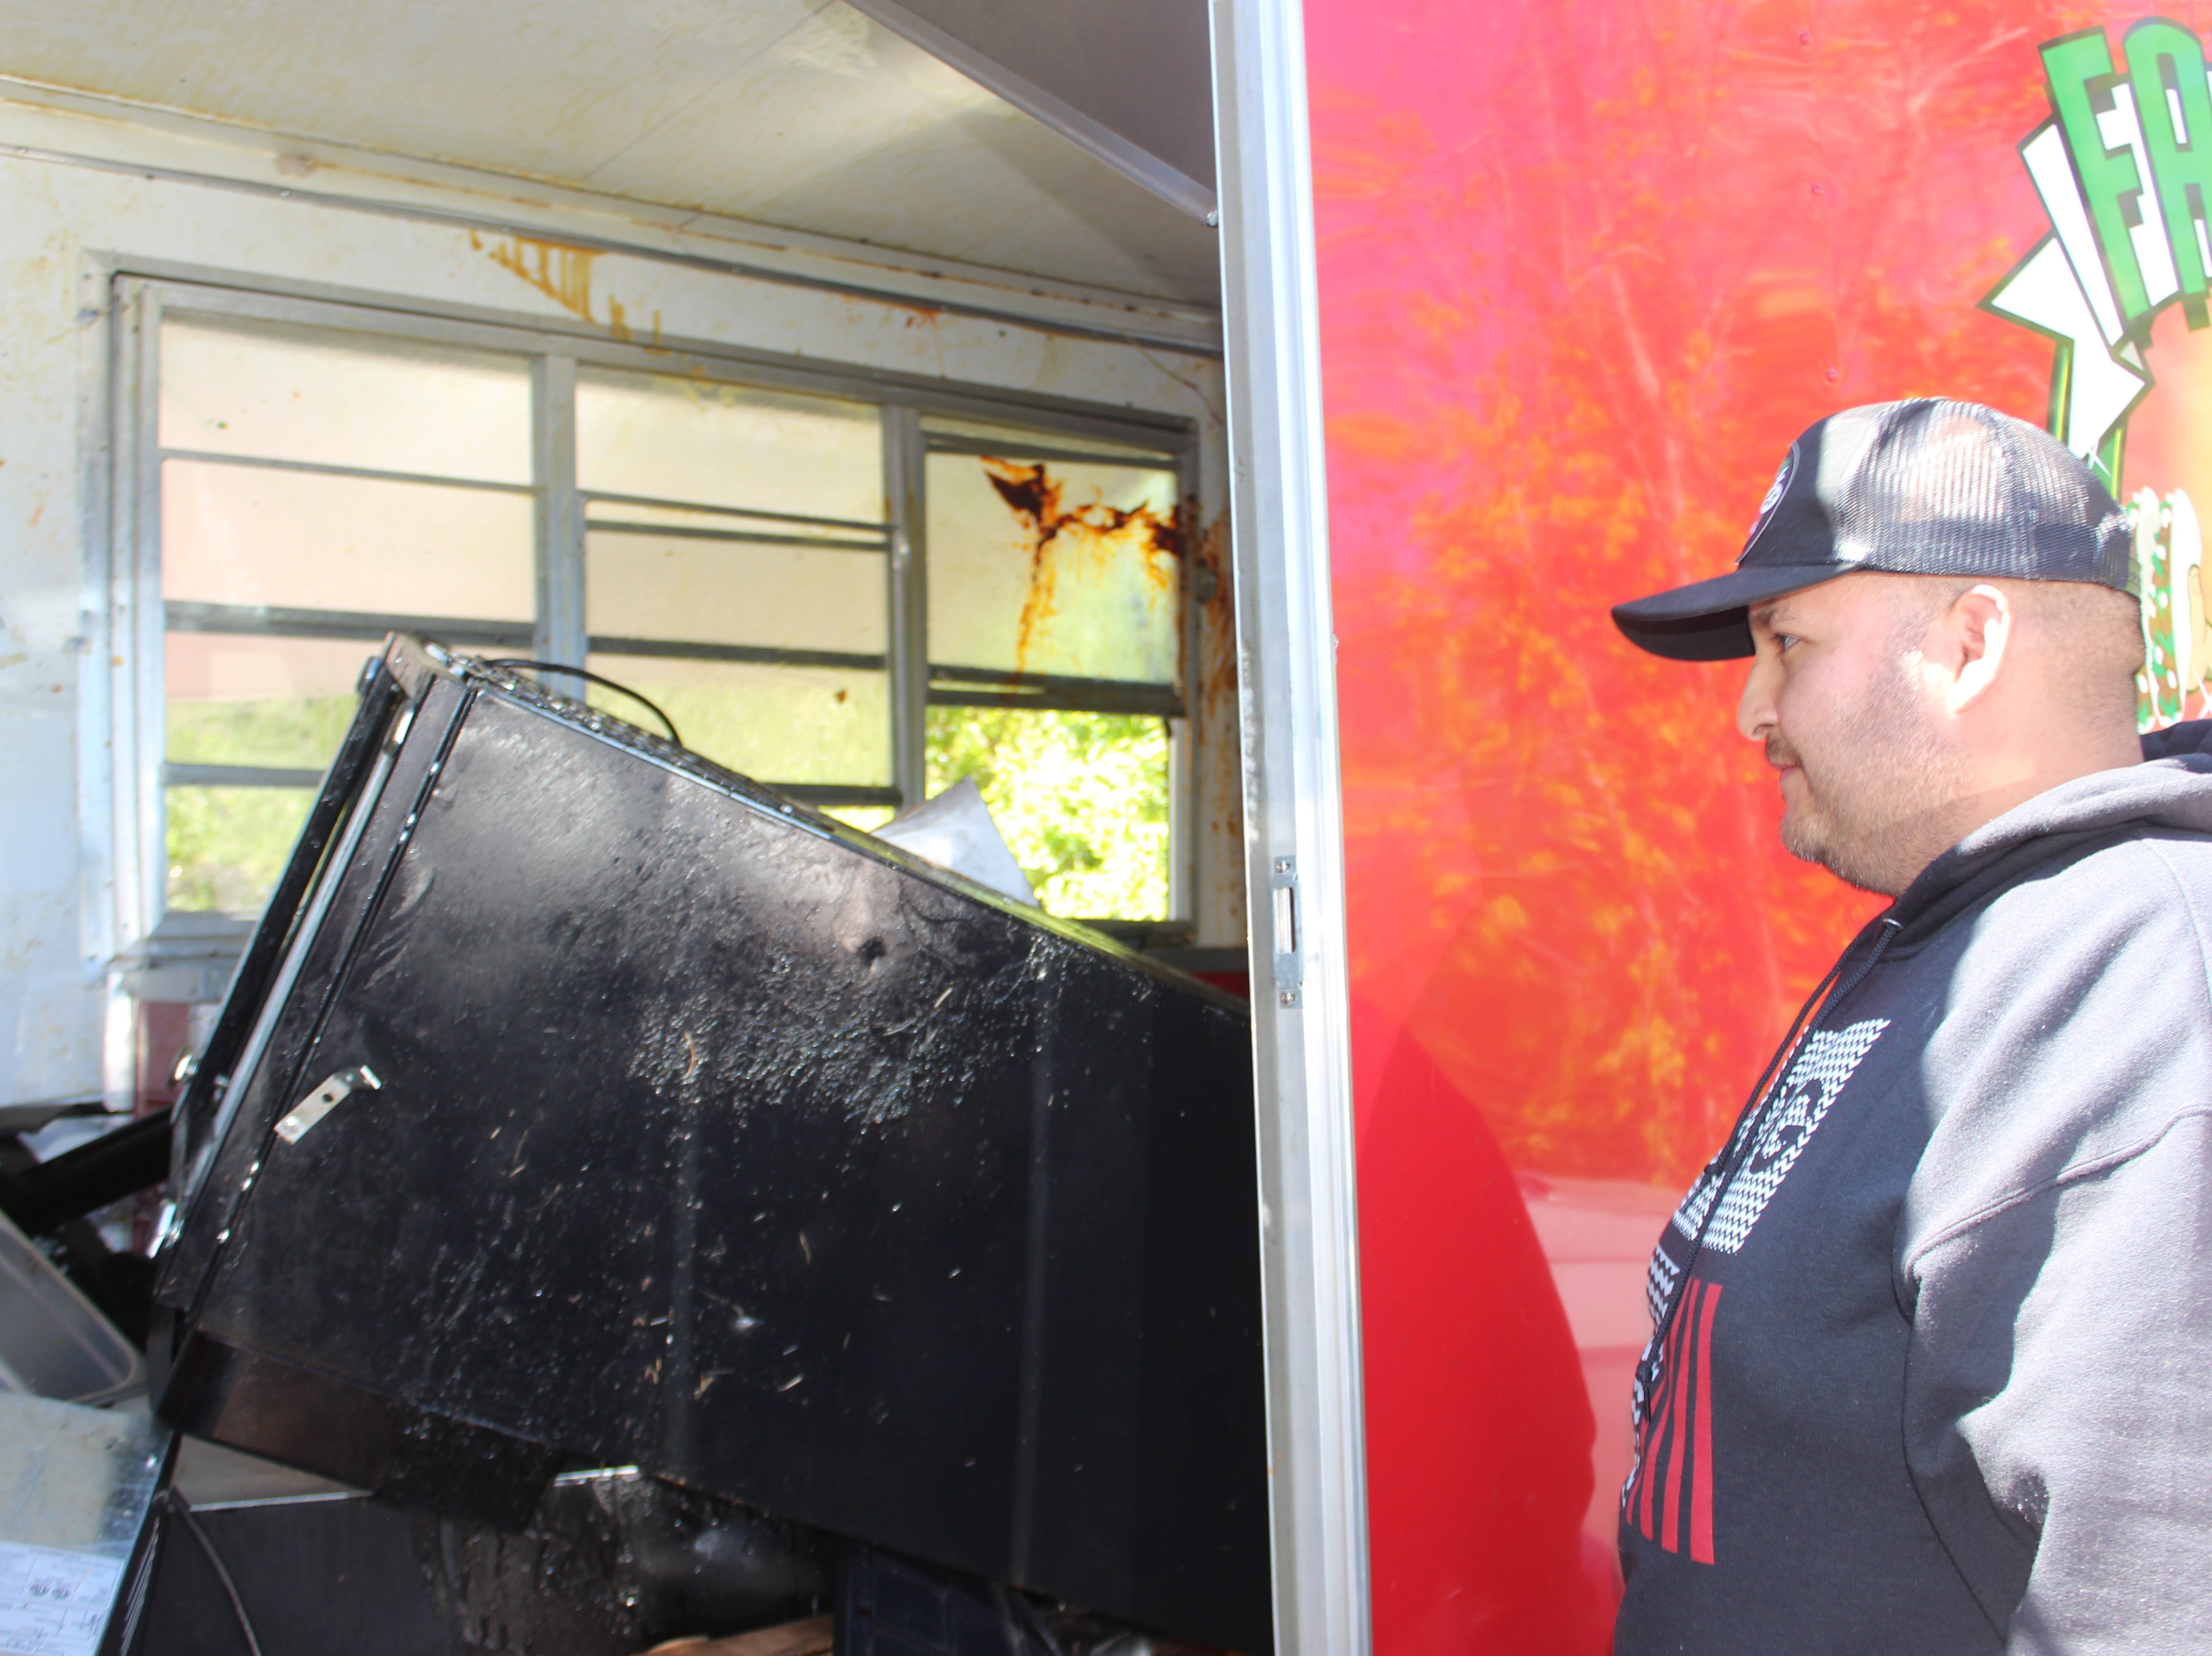 Adrian Gonzalez of Clarksville inspects the damage to his Fatboy Taco trailer, after it was totaled in an accident the night of Saturday, April 13, 2019.